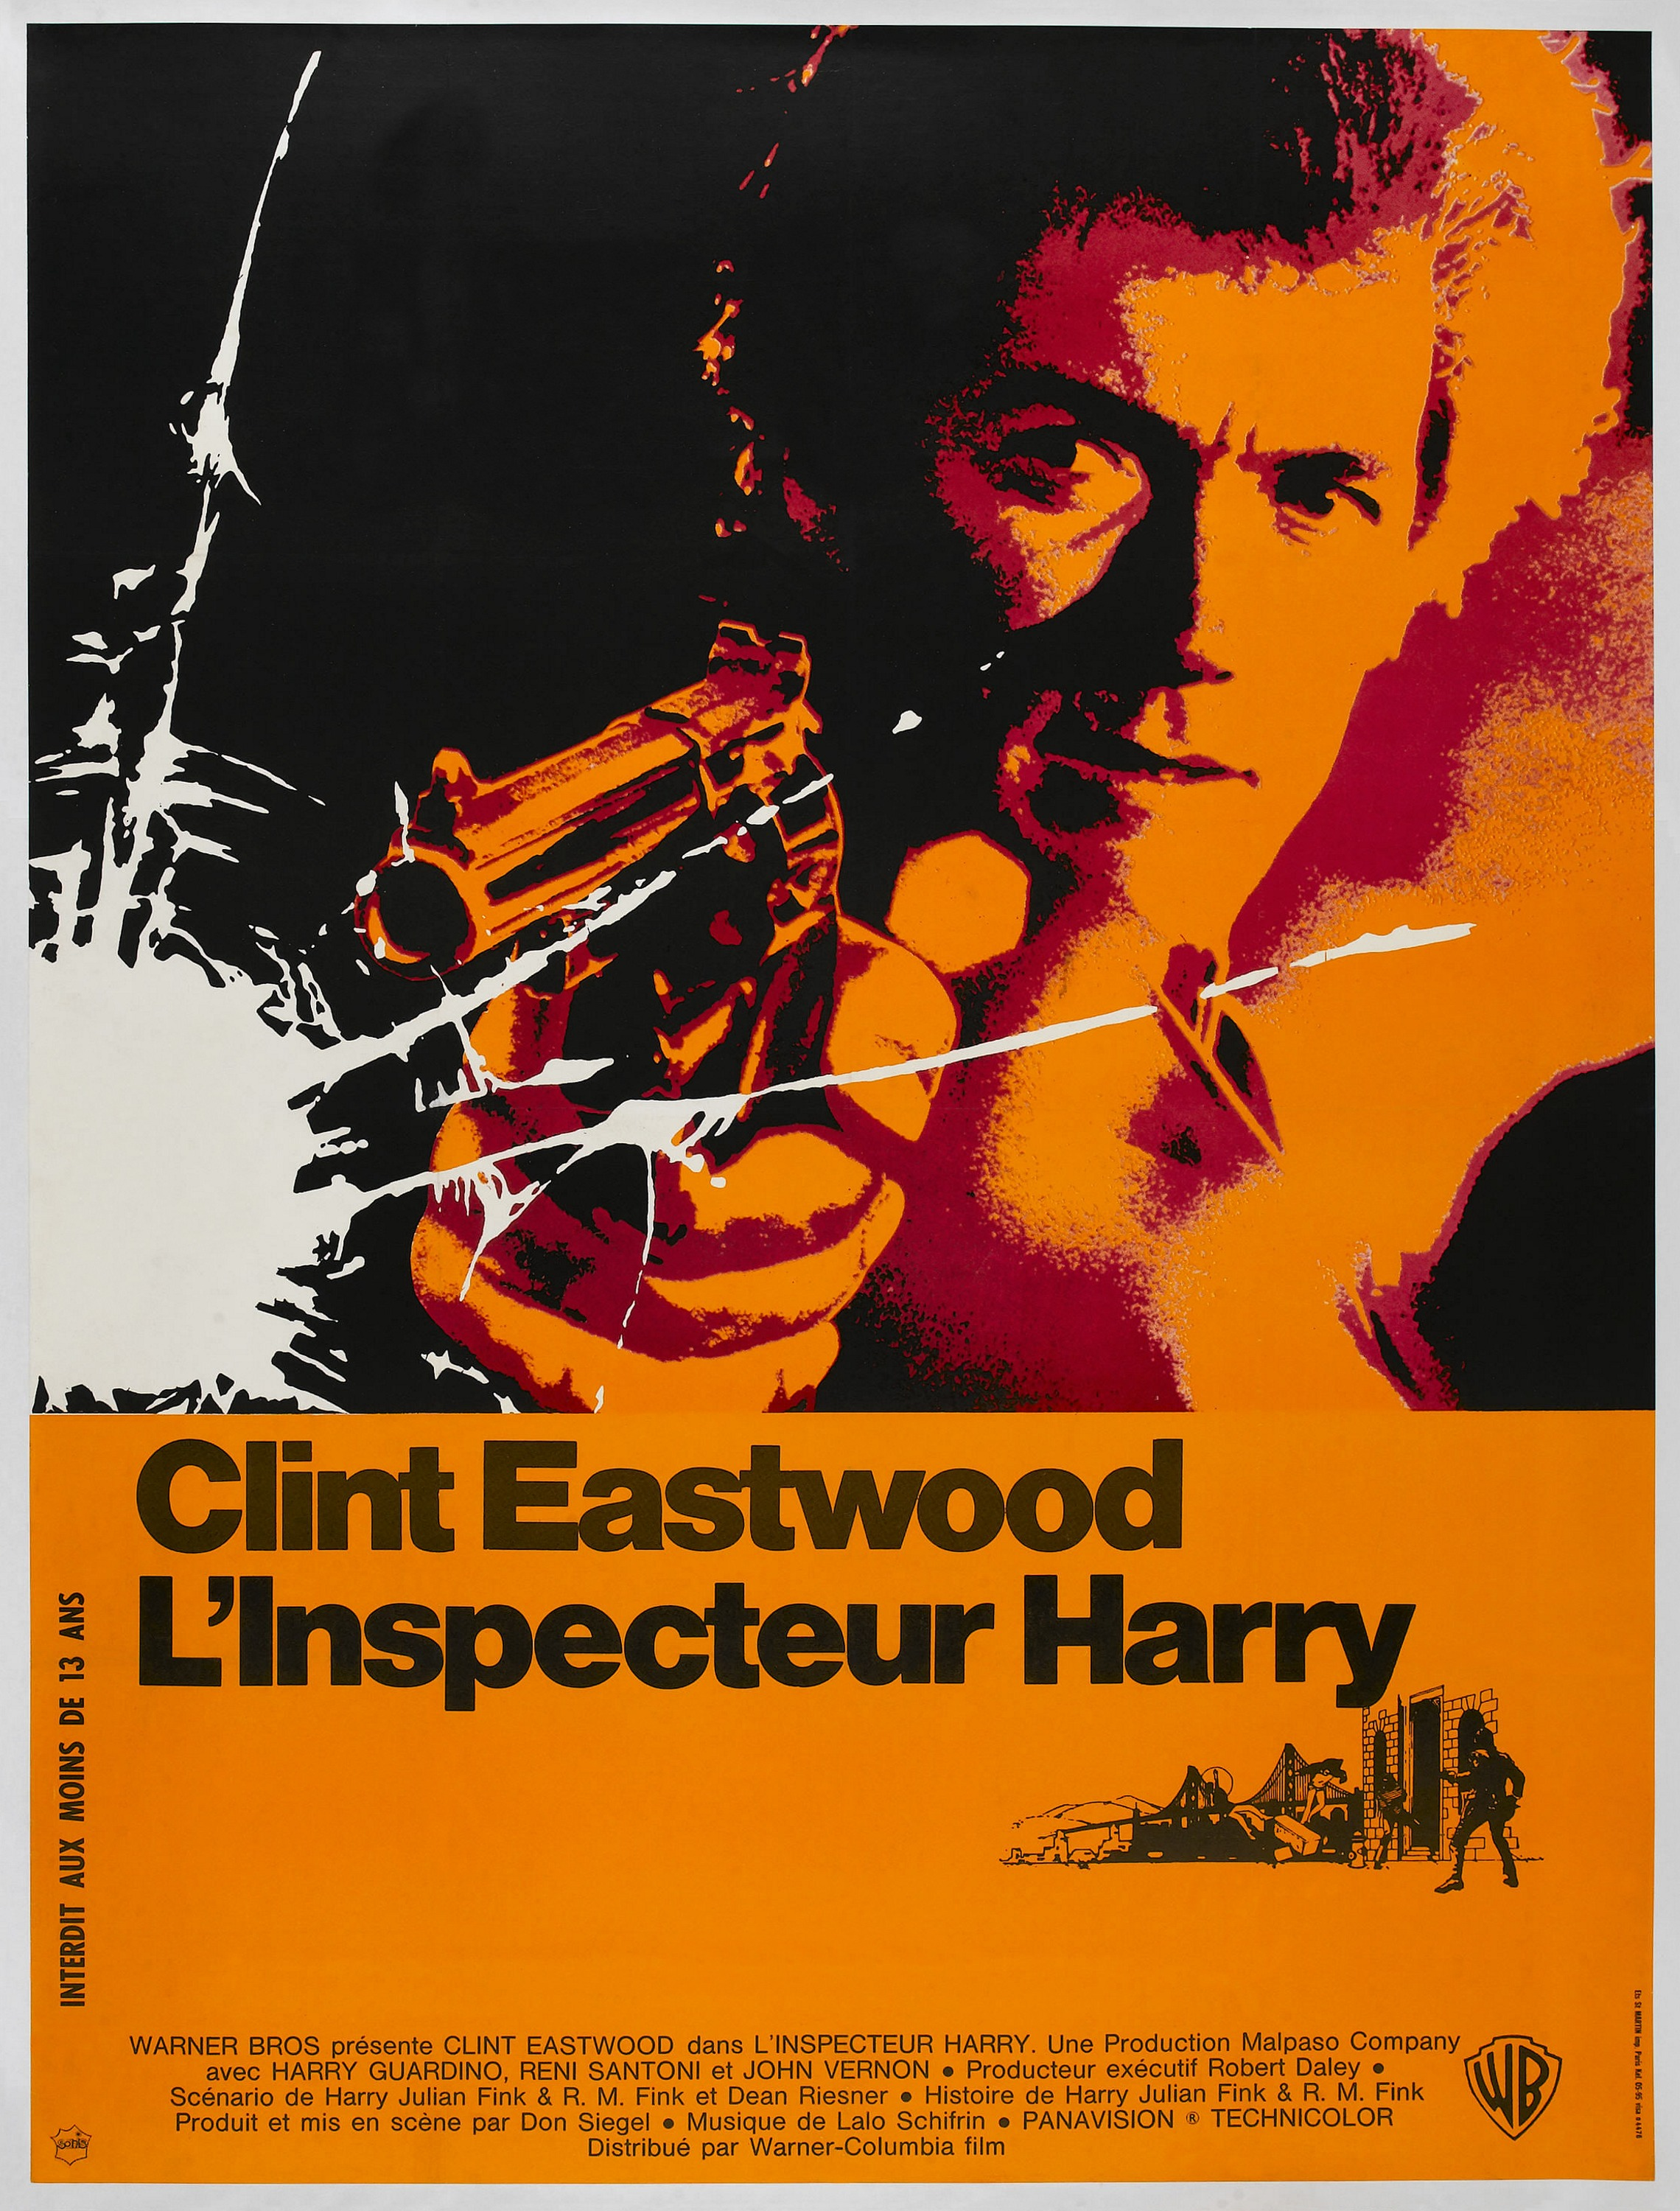 L'Inspecteur Harry (1971) de Don Siegel